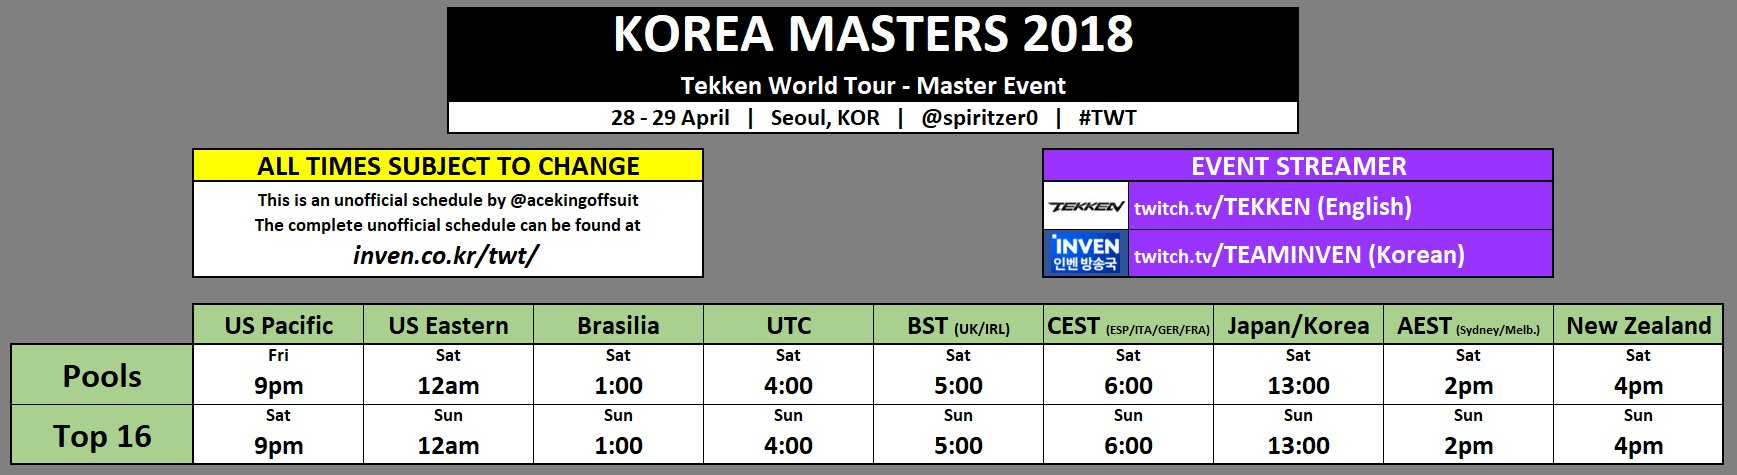 2Pm Bst To Aest tekken world tour 2018 korea masters event schedule 1 out of